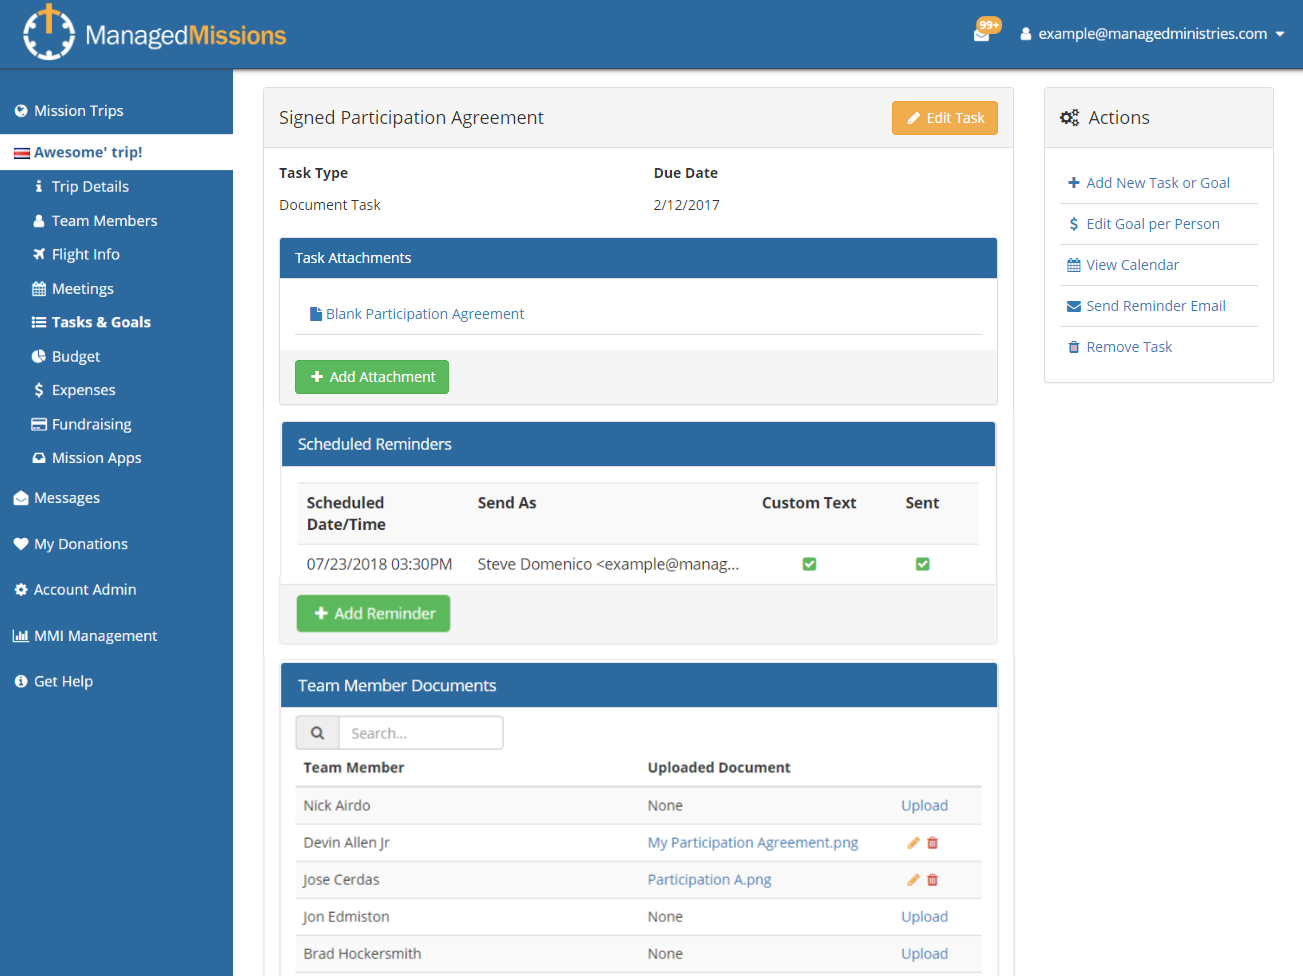 ManagedMissions | Short-Term Mission Trip Software